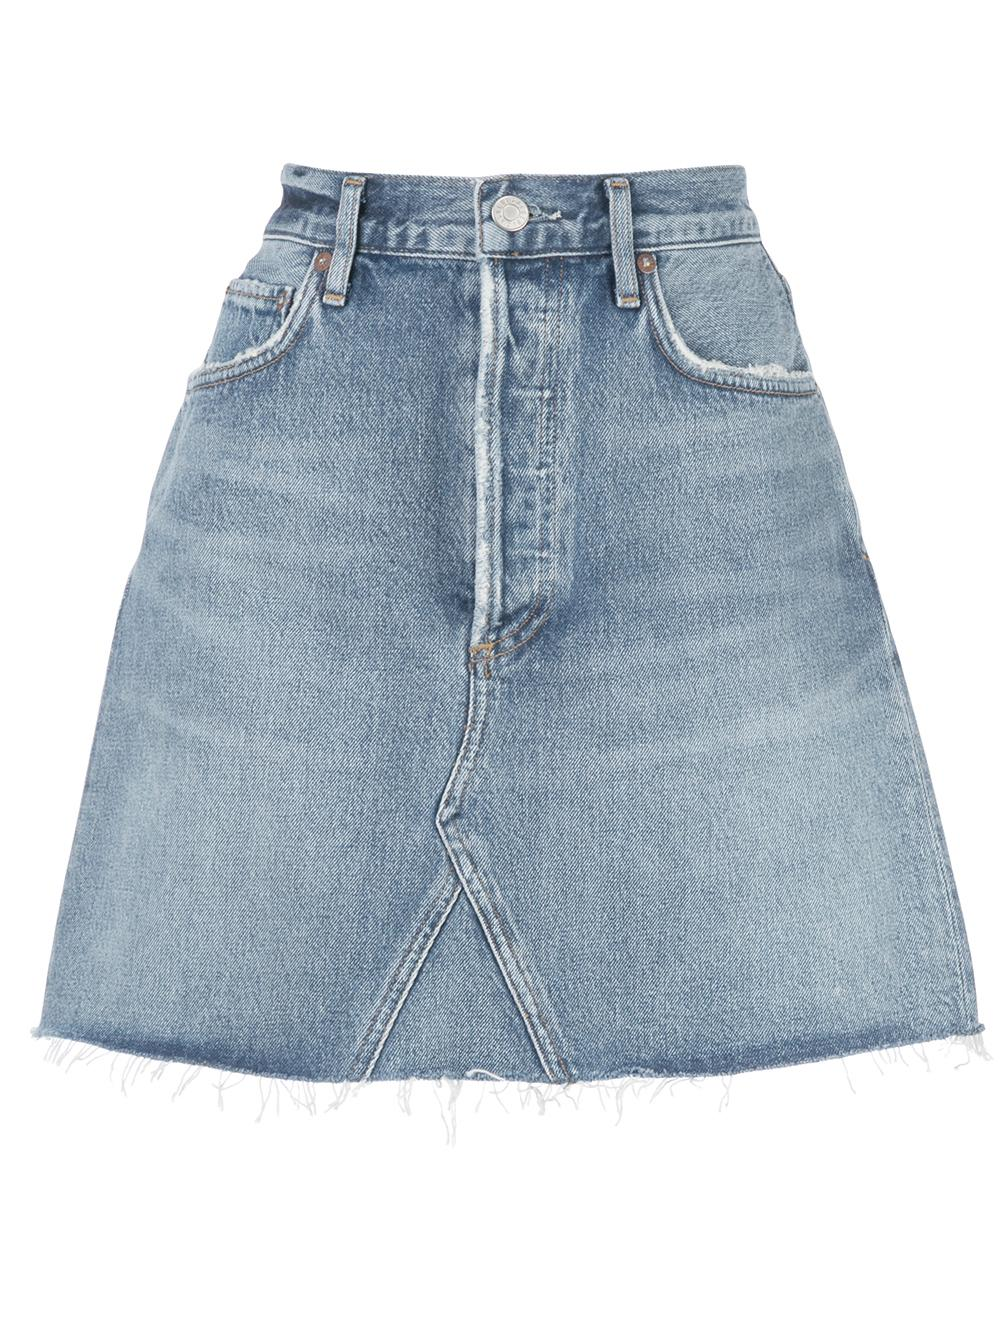 Ada High Rise Mid Length Denim Skirt